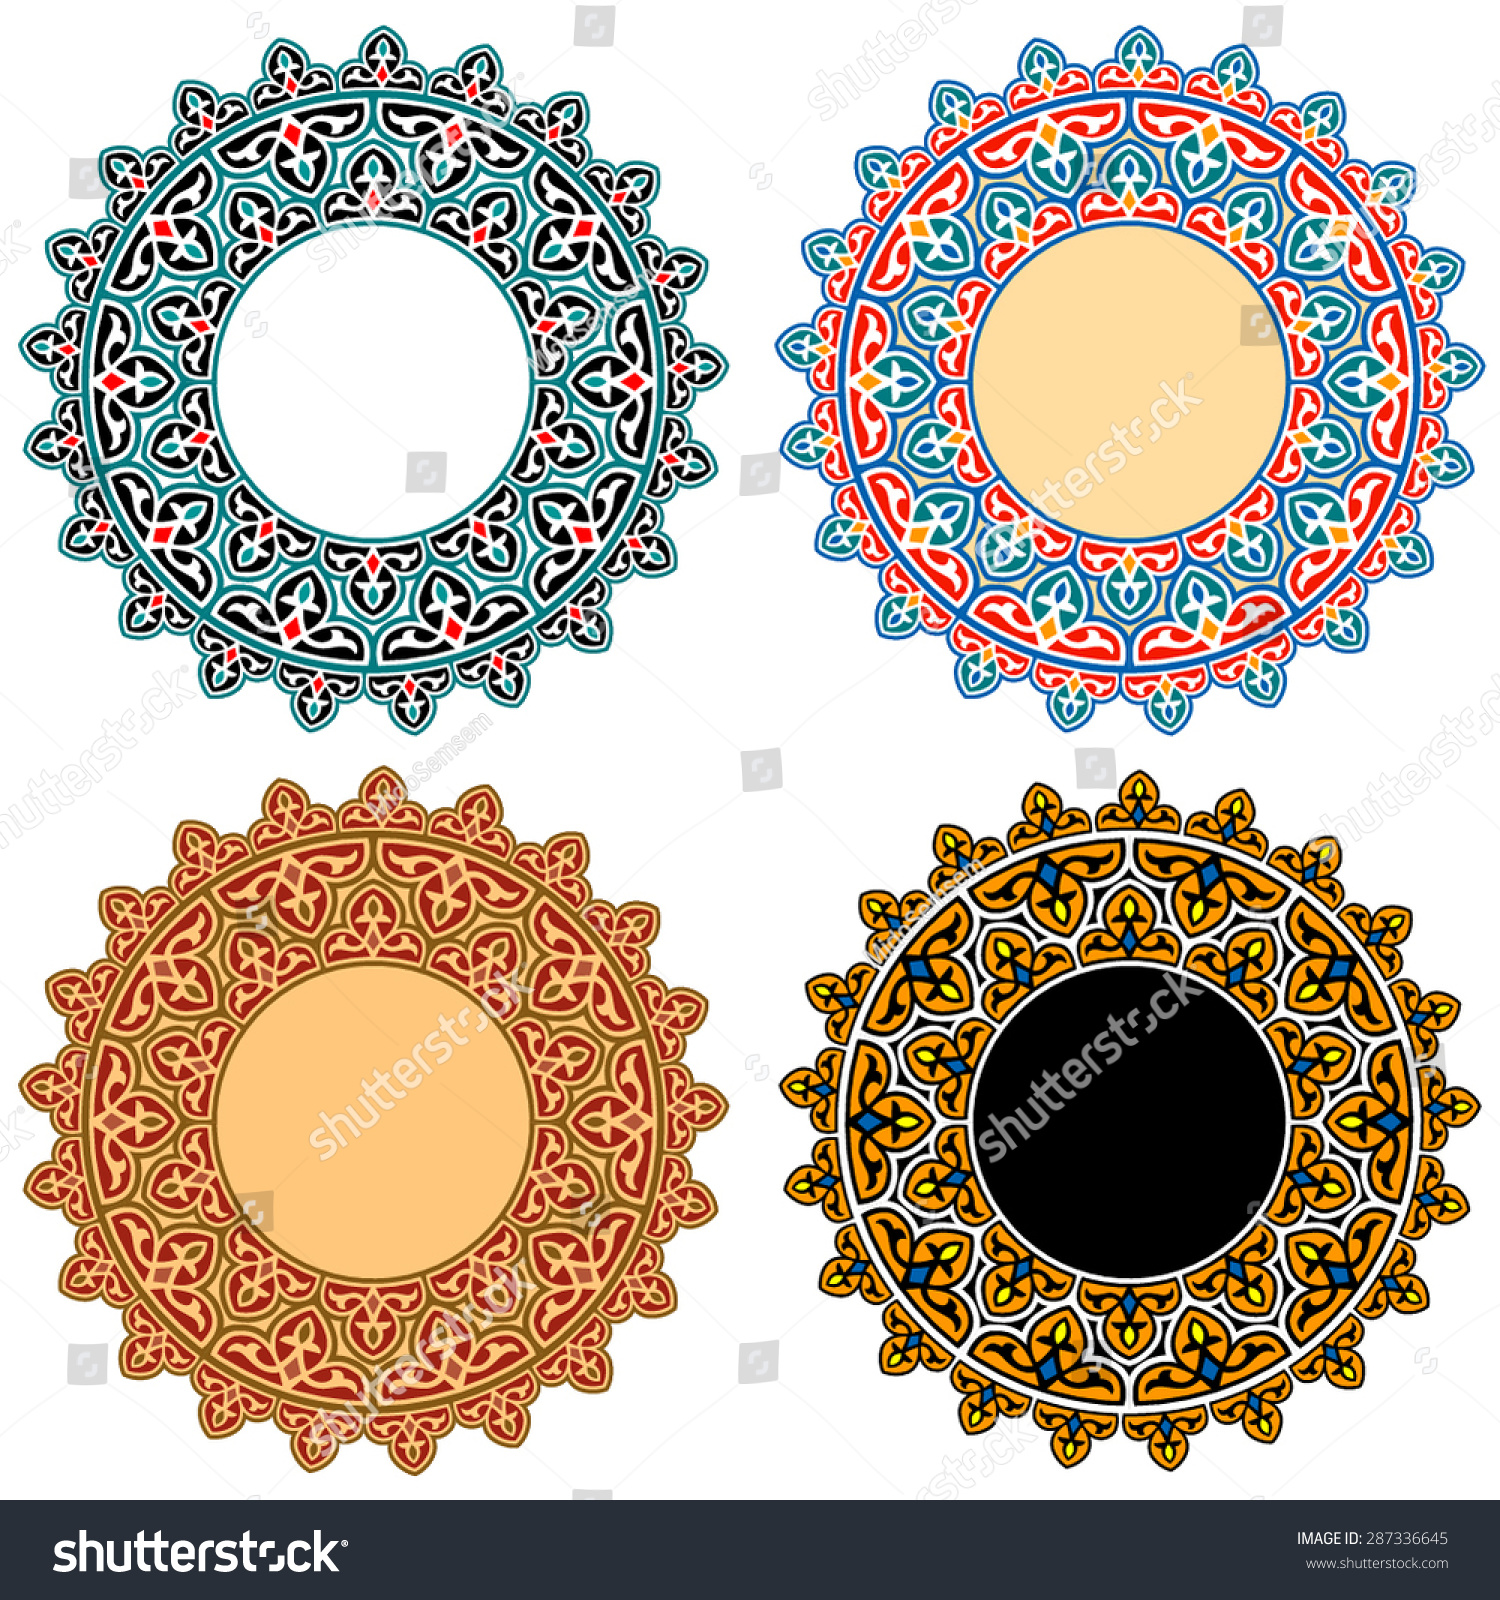 Vector Islamic Floral Art Ornaments Open Stock Vector